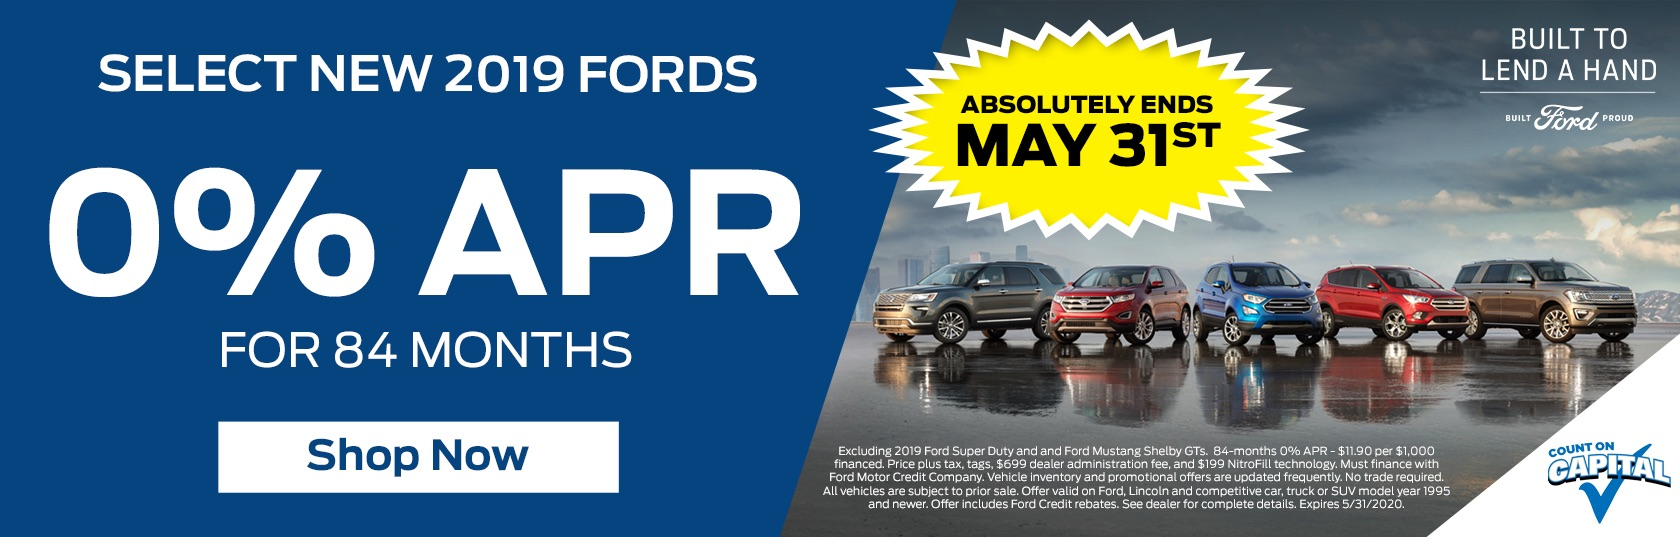 0% APR Banner for 2019 Fords